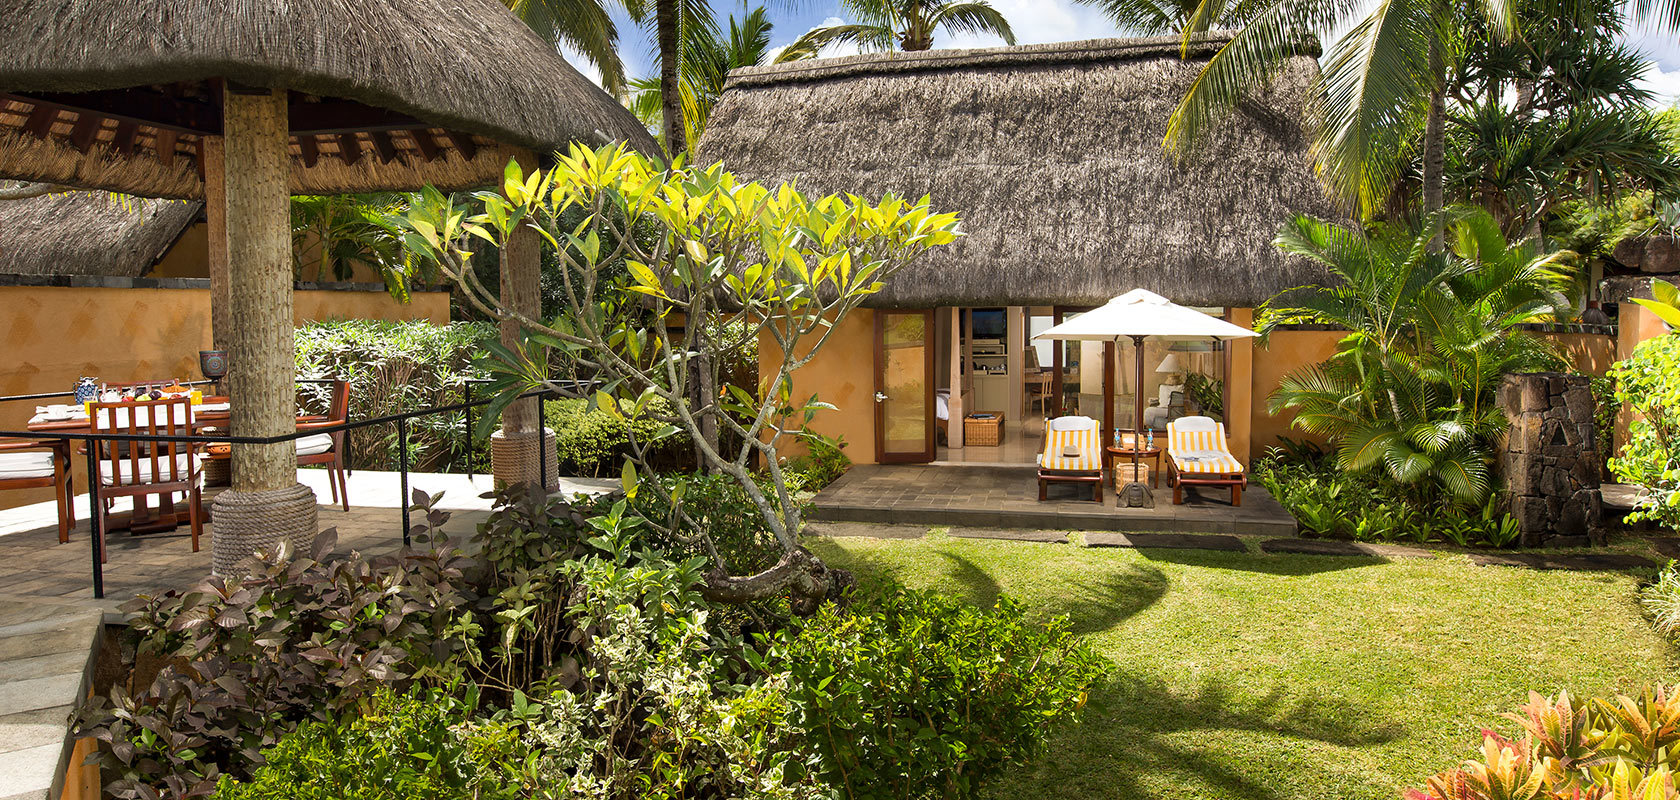 The Oberoi | One of the best hotels in Mauritius